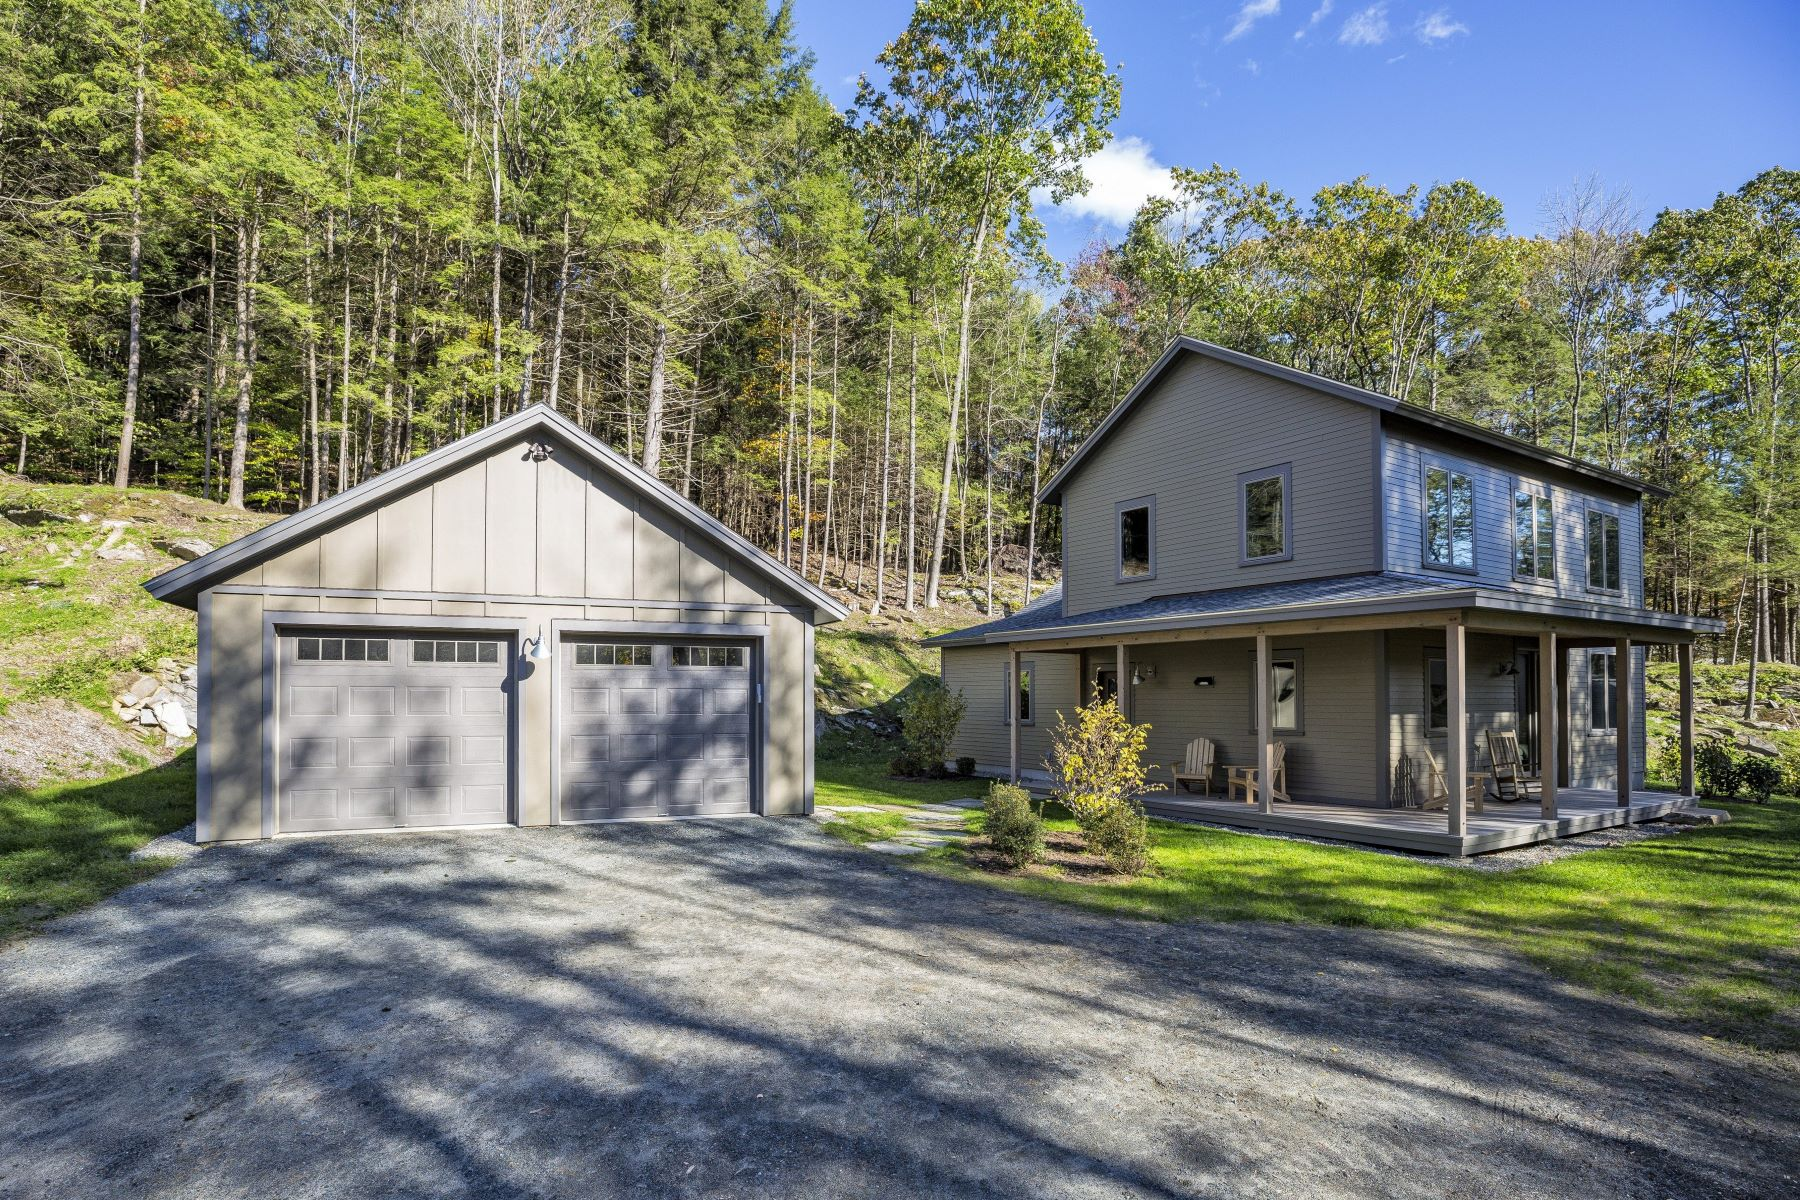 Single Family Home for Sale at Three Bedroom Farmhouse in Quechee Community 1013 Willard Rd 5206 Hartford, Vermont 05059 United States